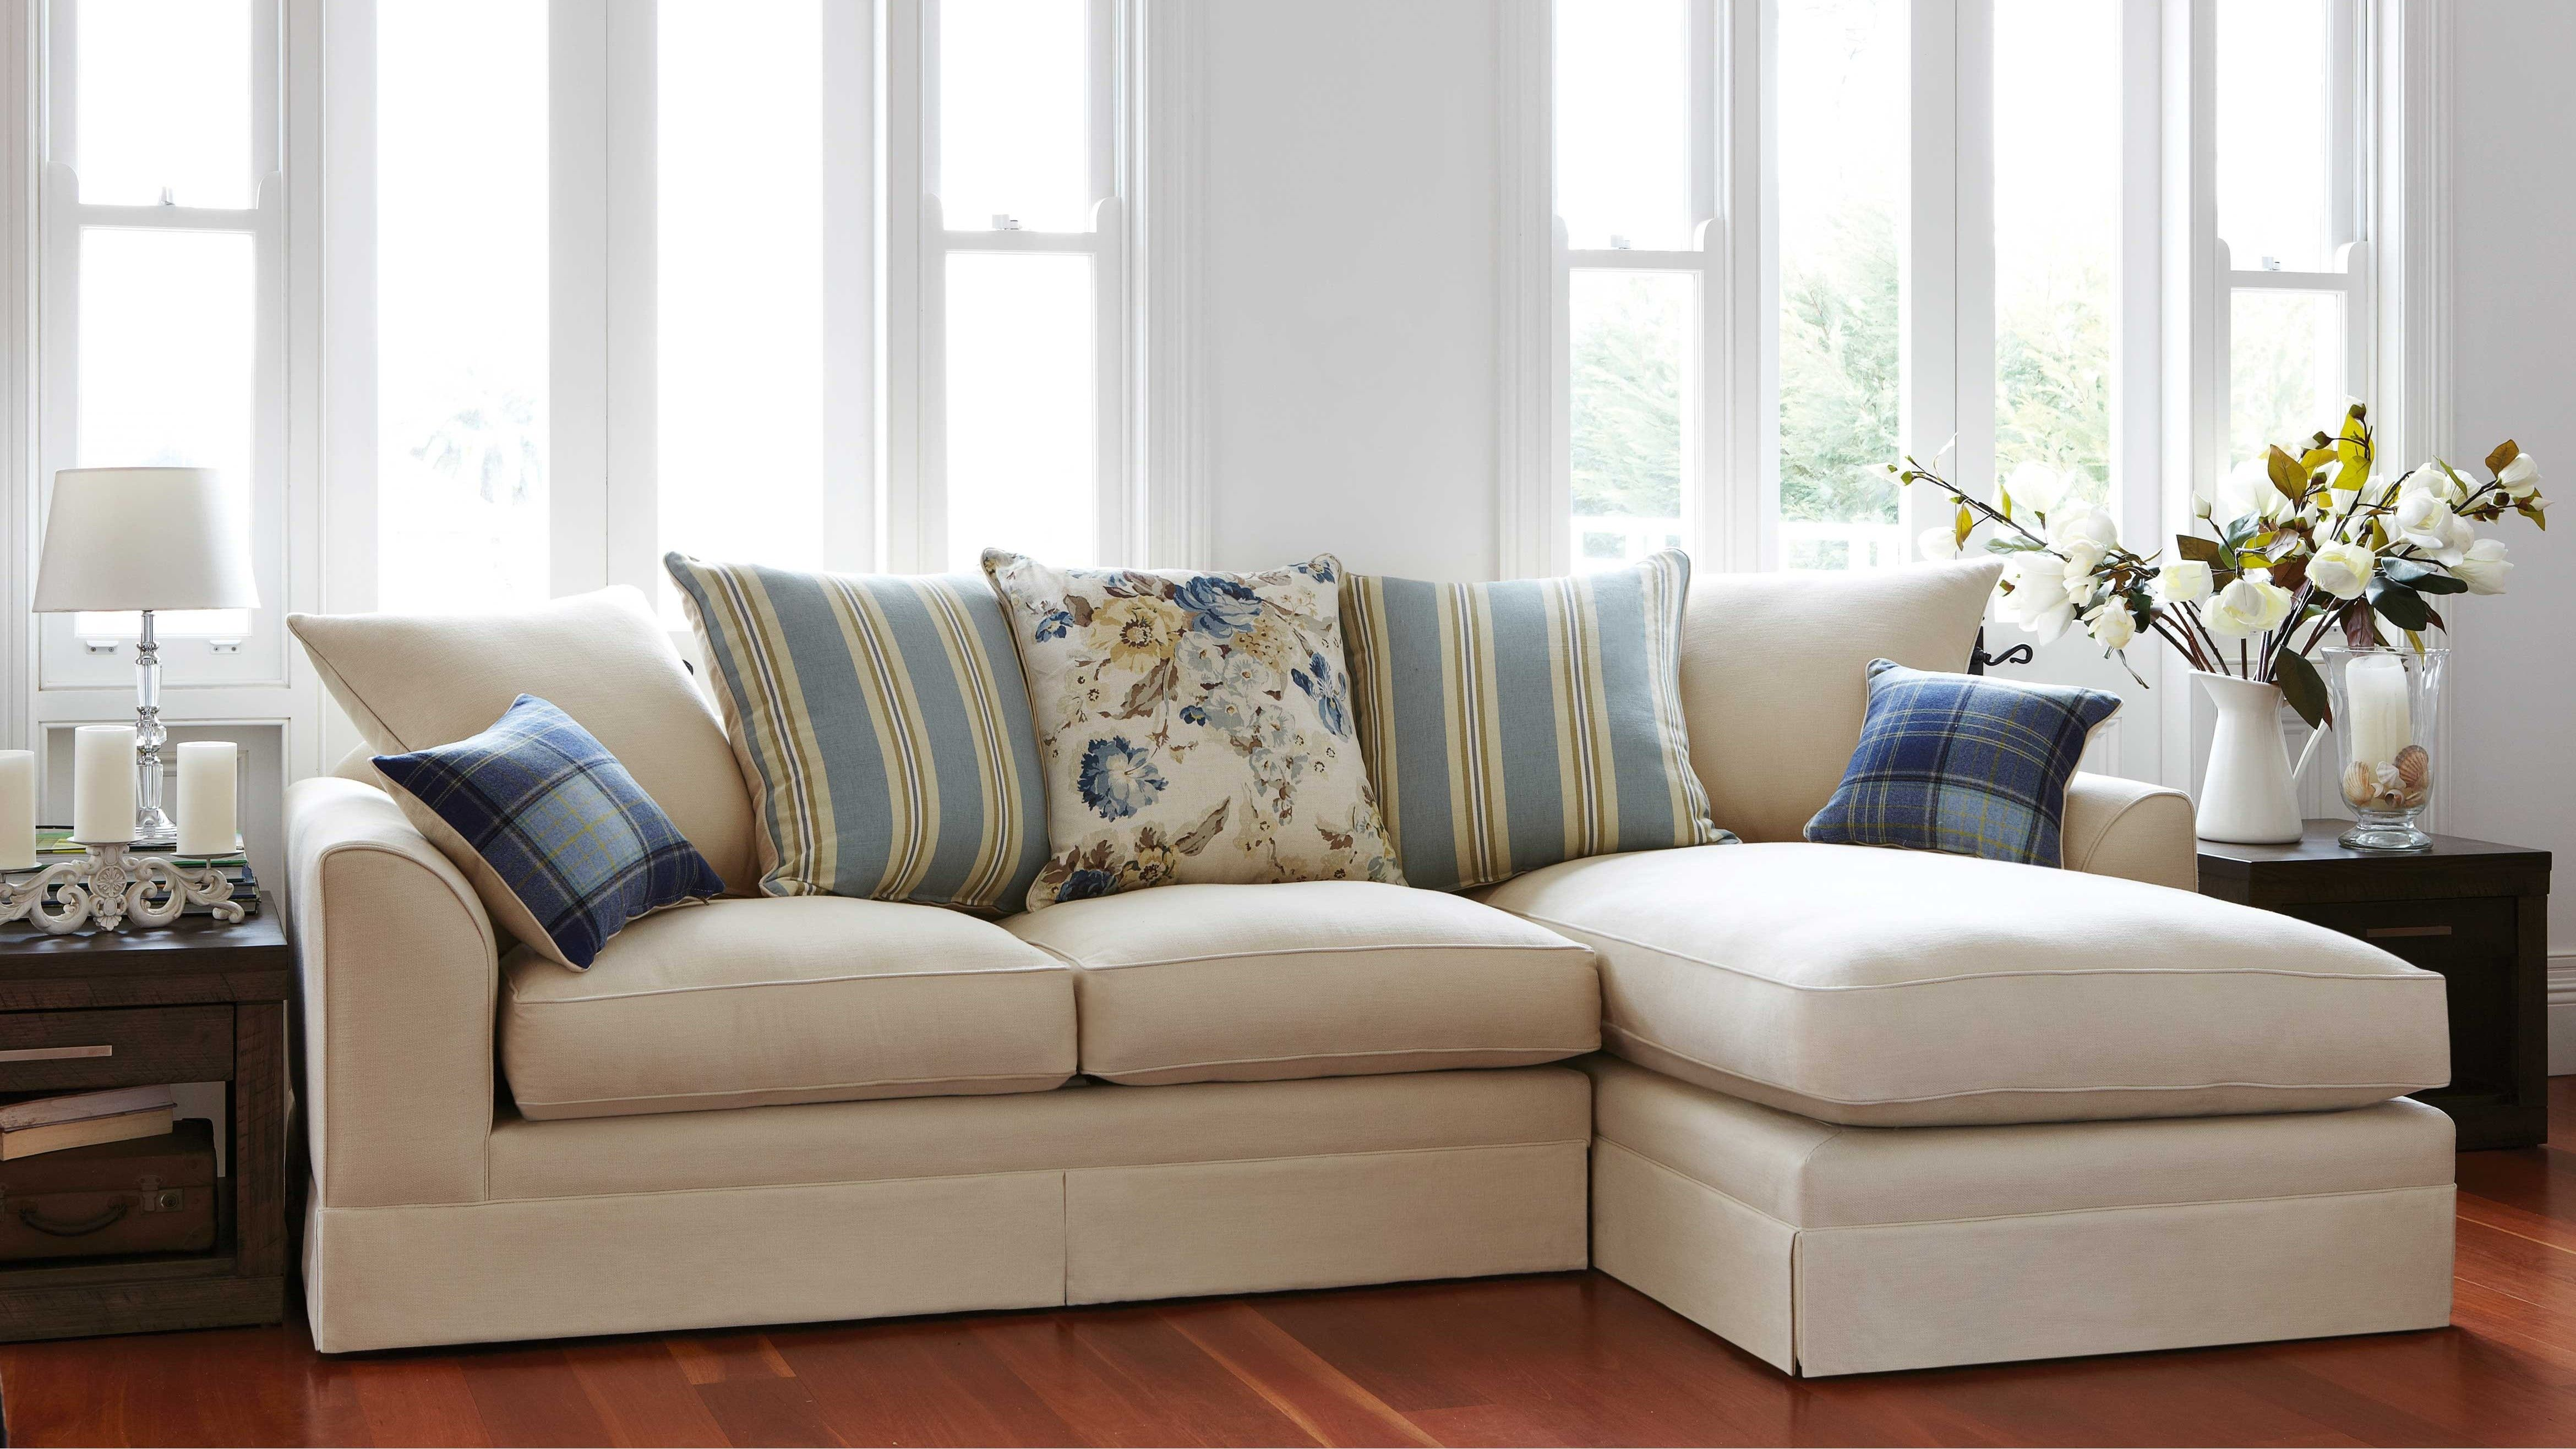 Westbridge 2.5 Seater Lounge - has Chaise which I want. Harvey ...